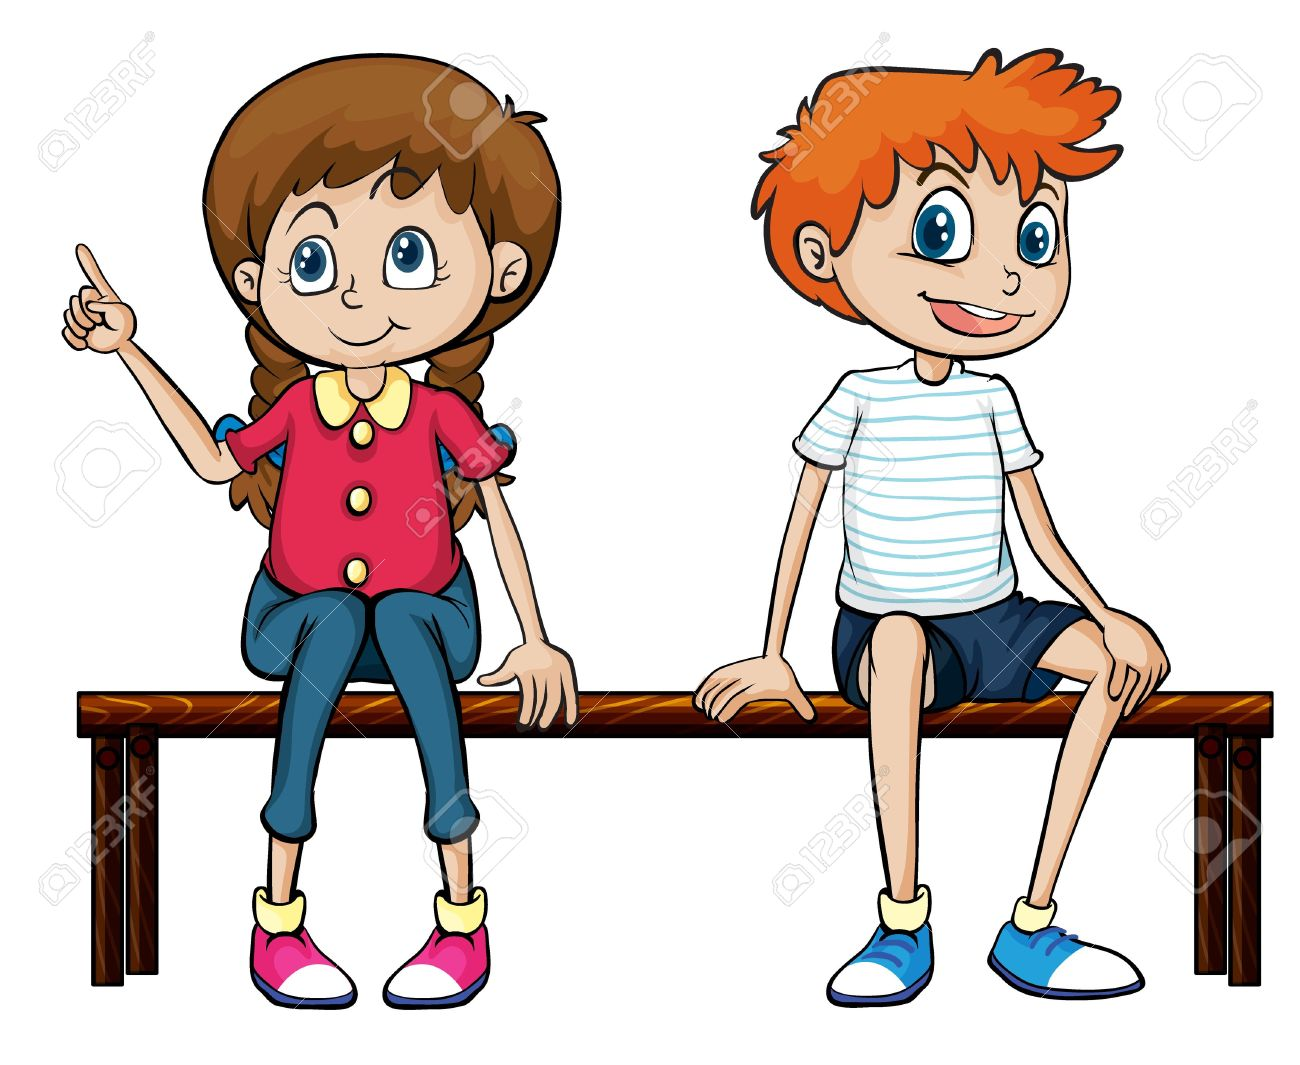 Illustration Of A Boy And A Girl Sitting On A Bench On A White